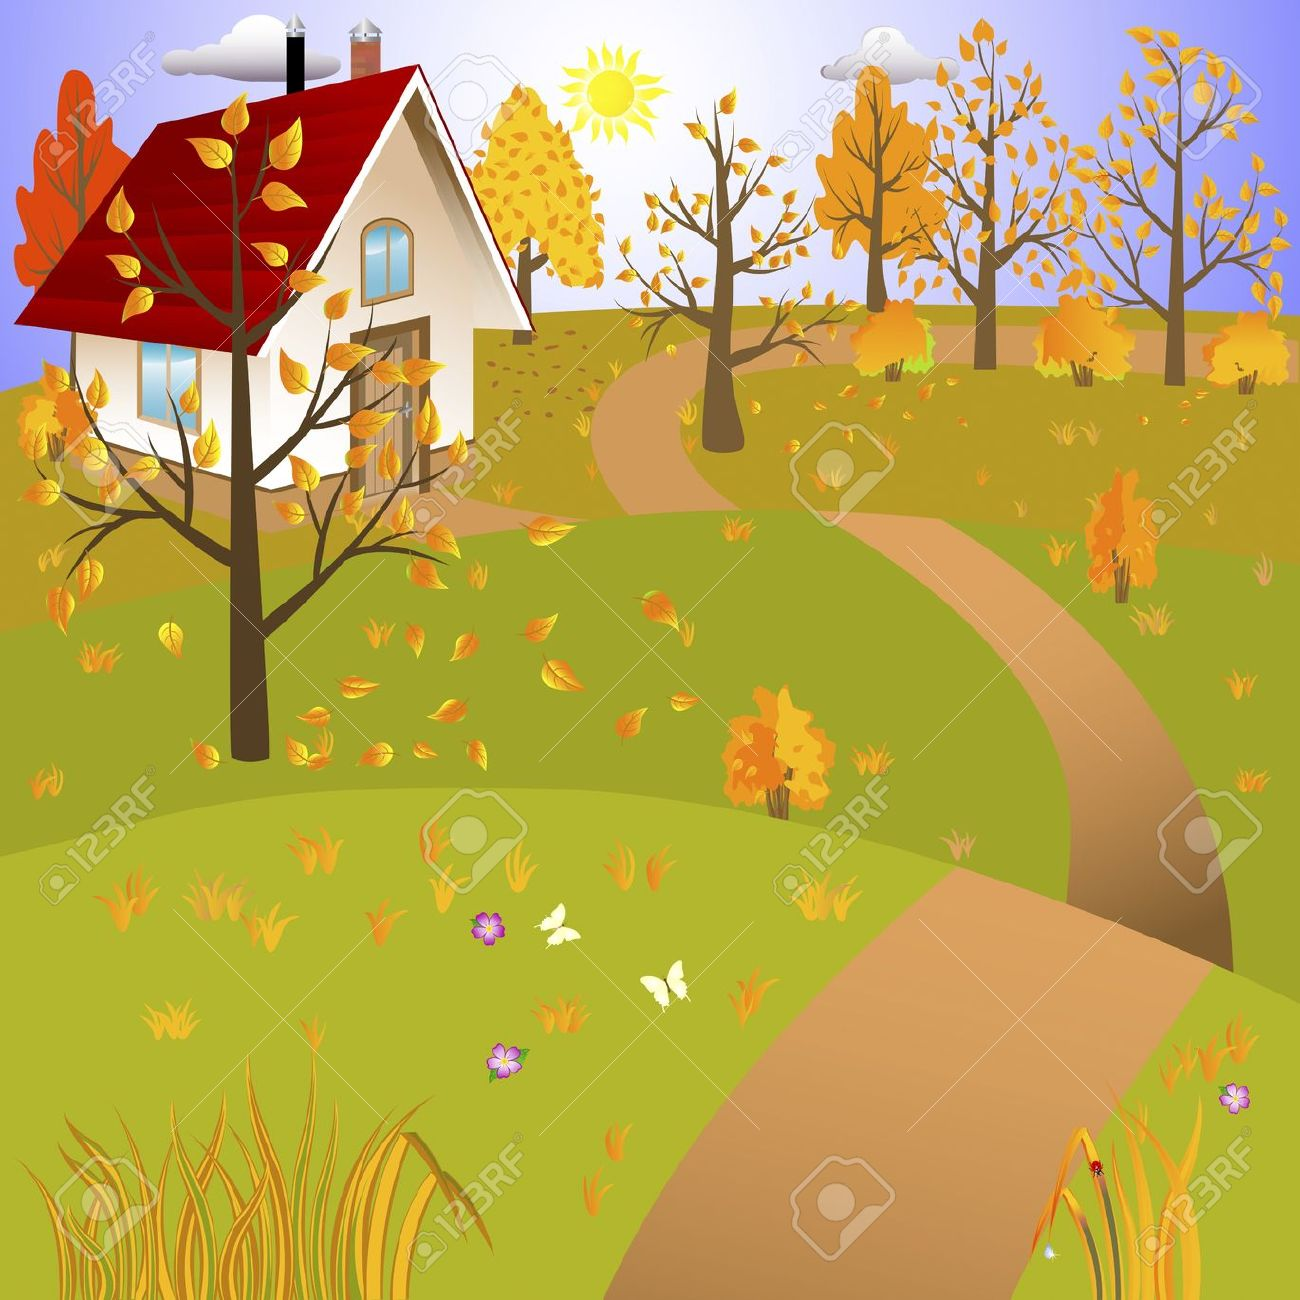 House on landscape clipart vector.